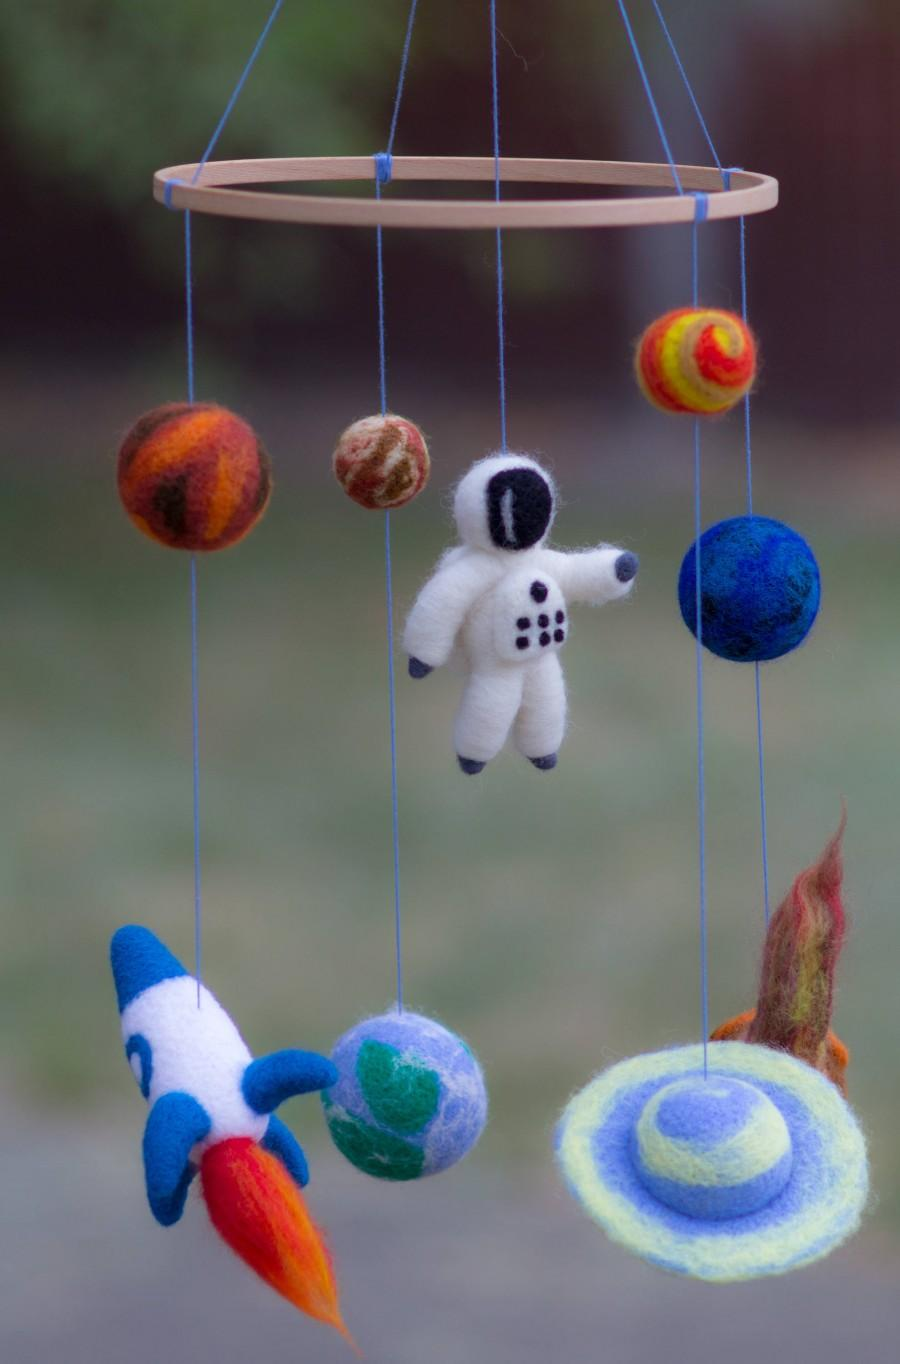 Wedding - Baby Mobile Planets Mobile Baby Crib Mobile Solar Systems mobile Space nursery mobile Earth  Moon Planets Nursery Decor Rocket Ship Mobile